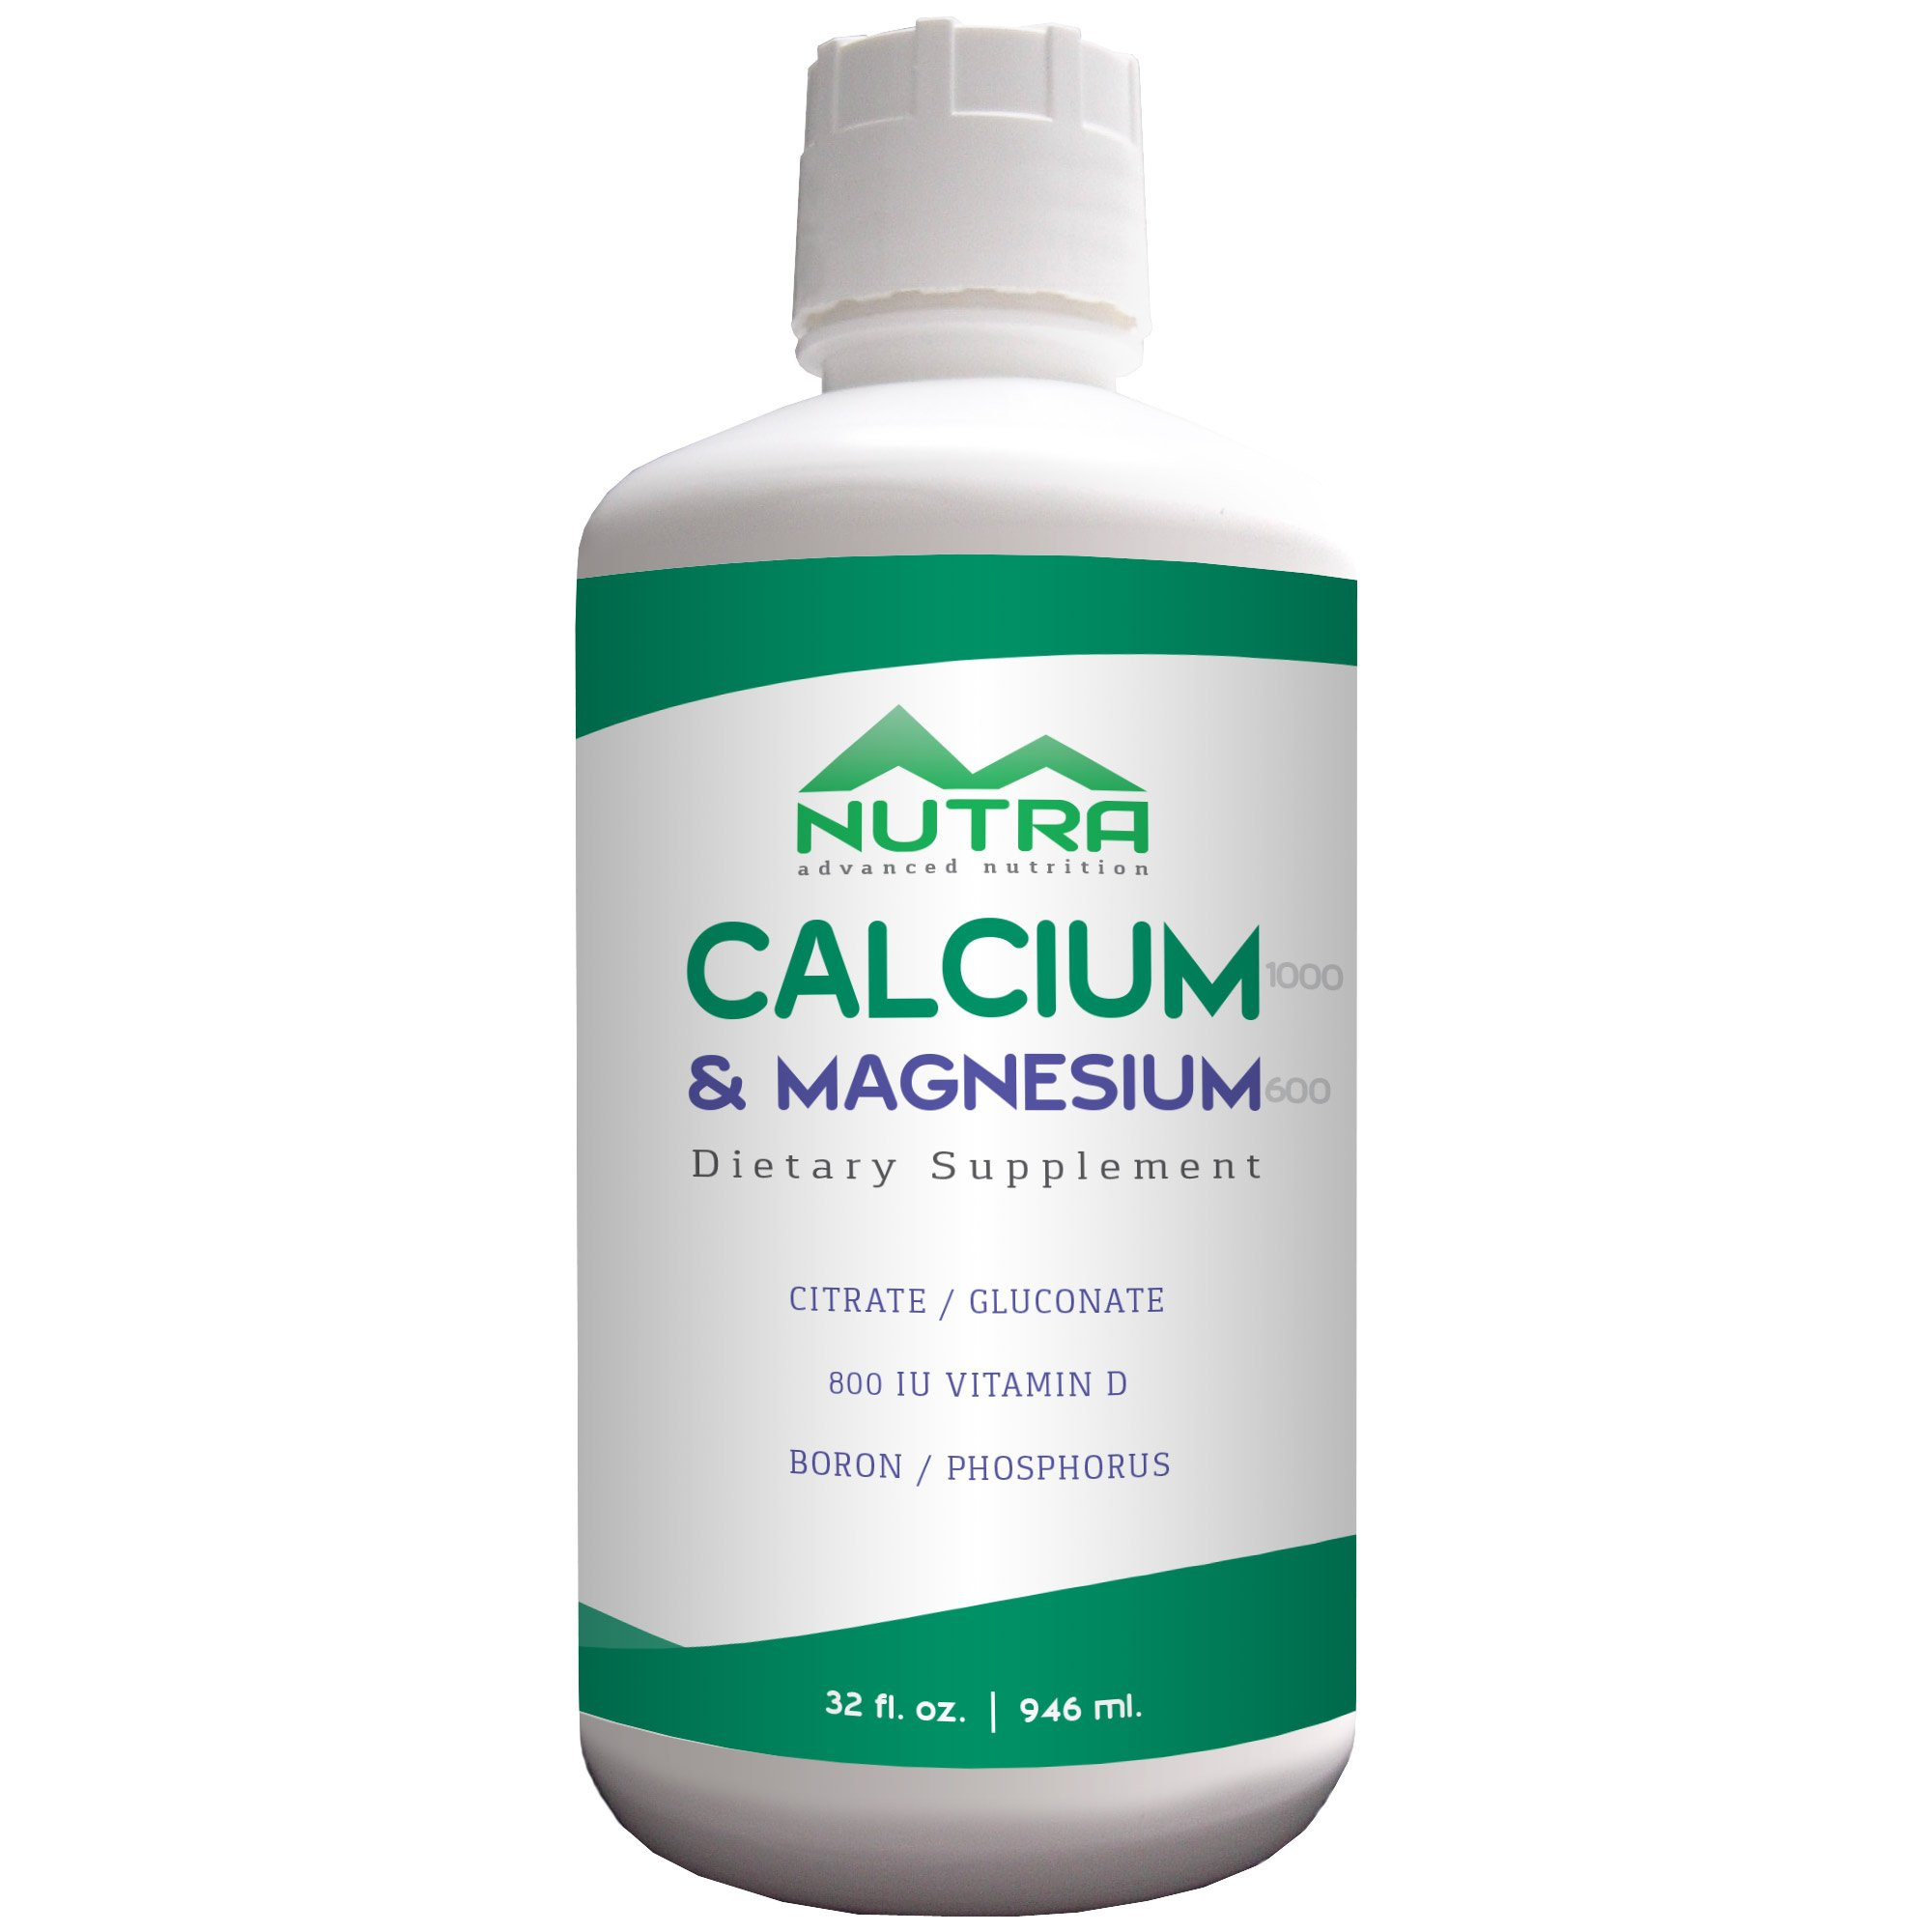 Private Label Calcium Magnesium Supplement